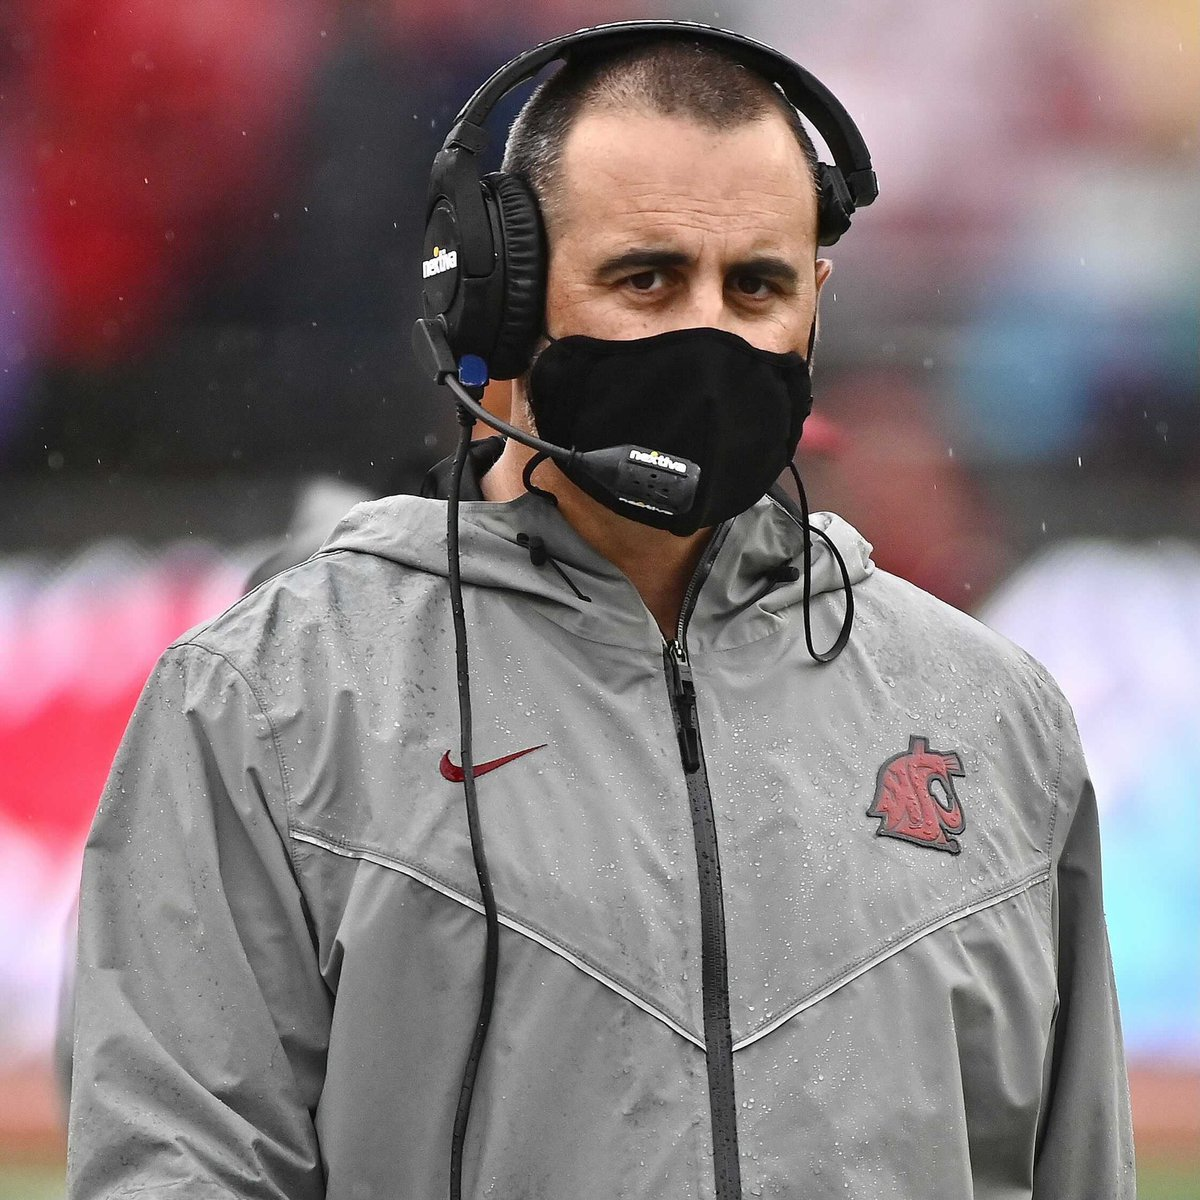 Washington State HC Nick Rolovich has been terminated along with other unvaccinated WSU assistants, per @johncanzanobft